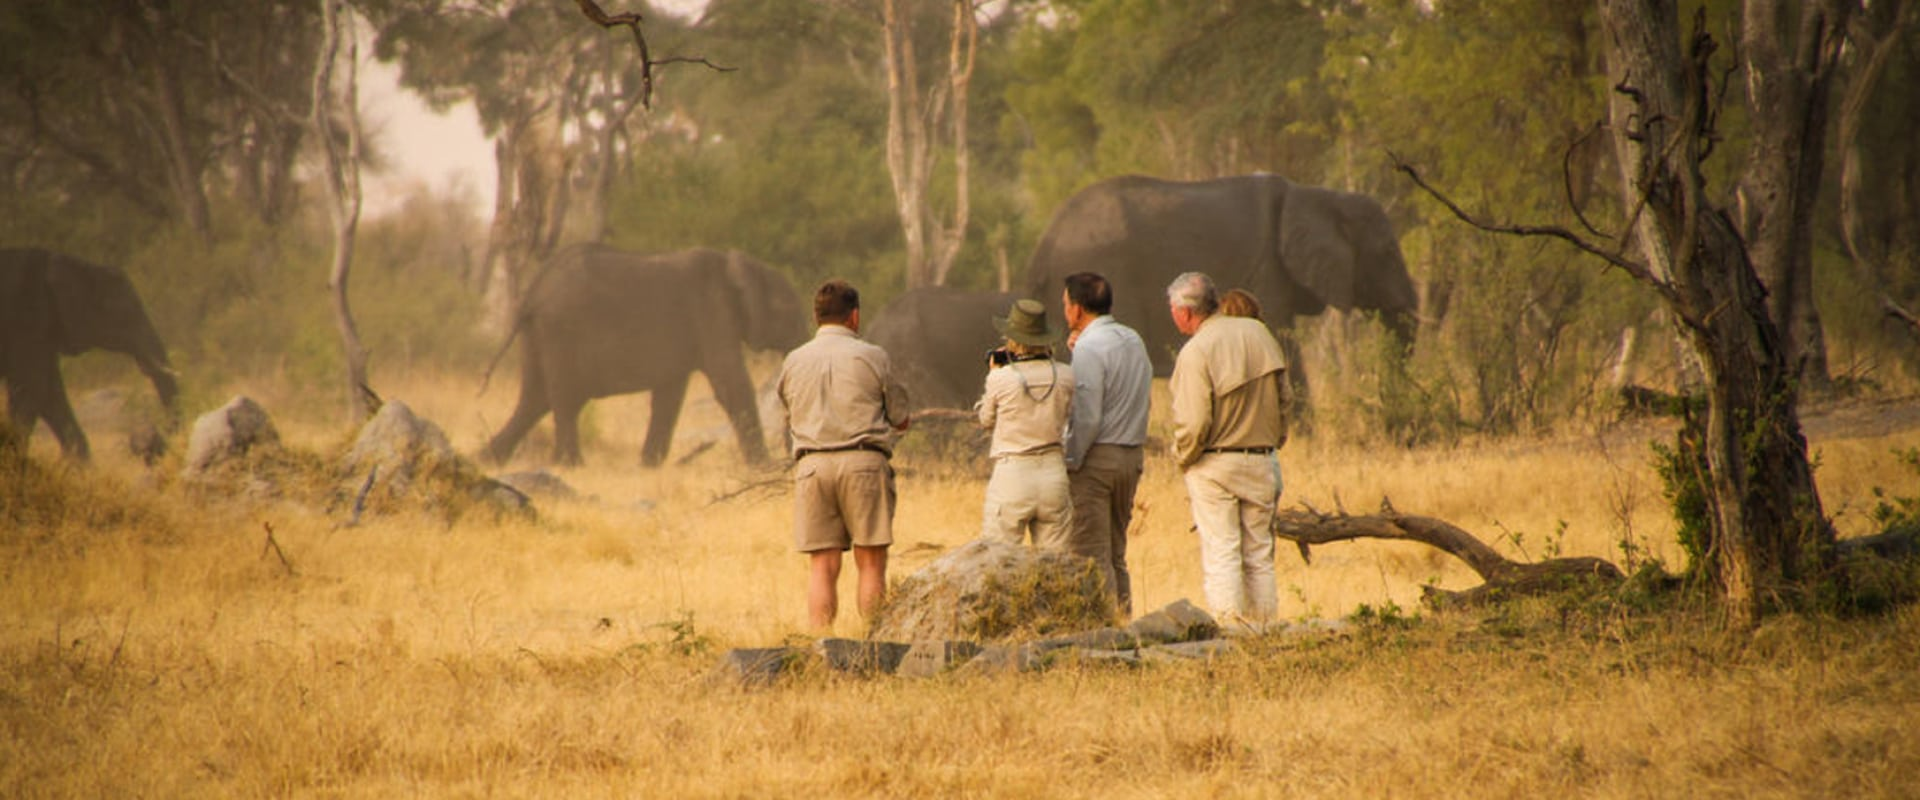 Explore the bush on foot to see all things big and small on a guided walking safari